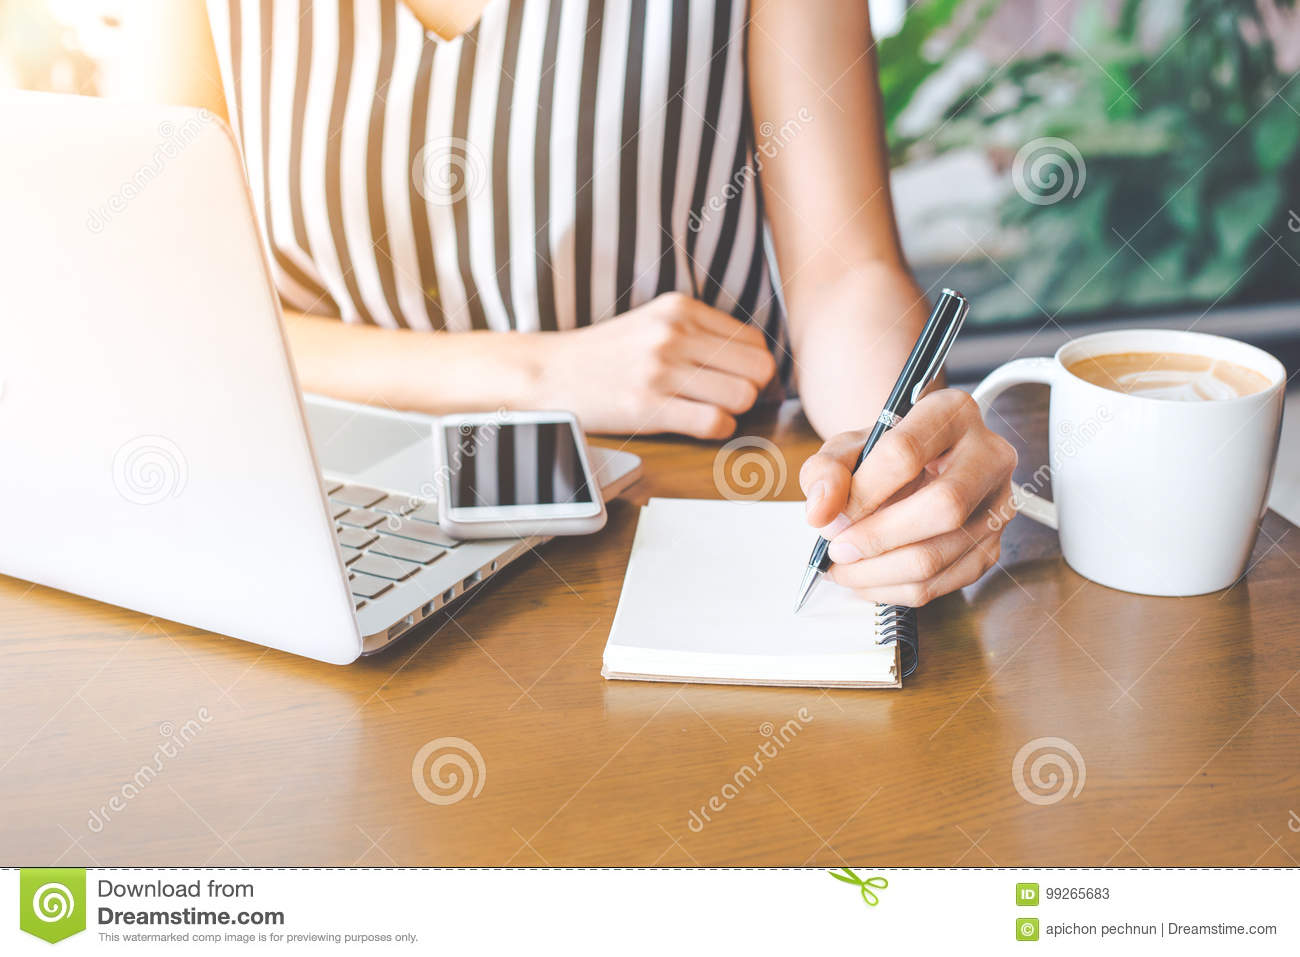 Business woman hand working at a computer and writing on a noteped with a pen.